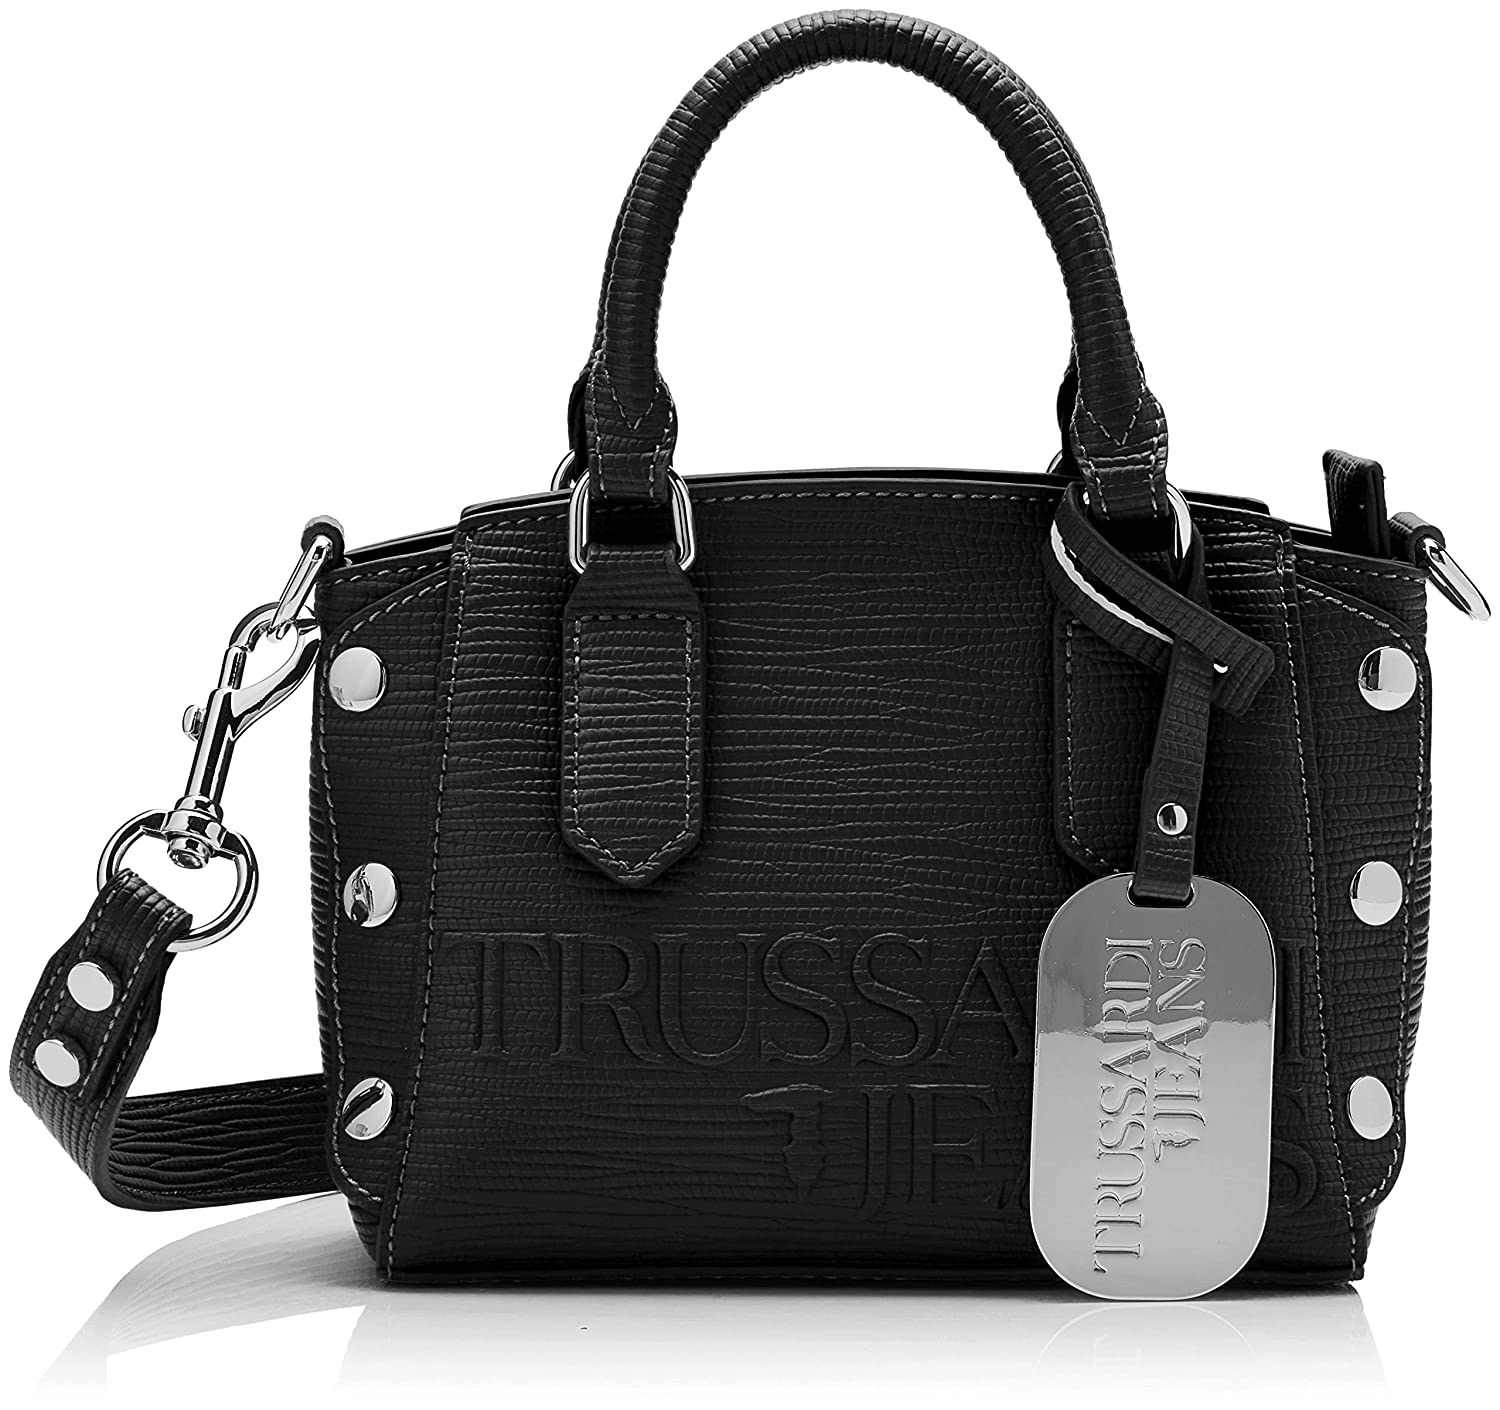 Black Trussardi Jeans Women's Melly Tote Xs Tote Bag